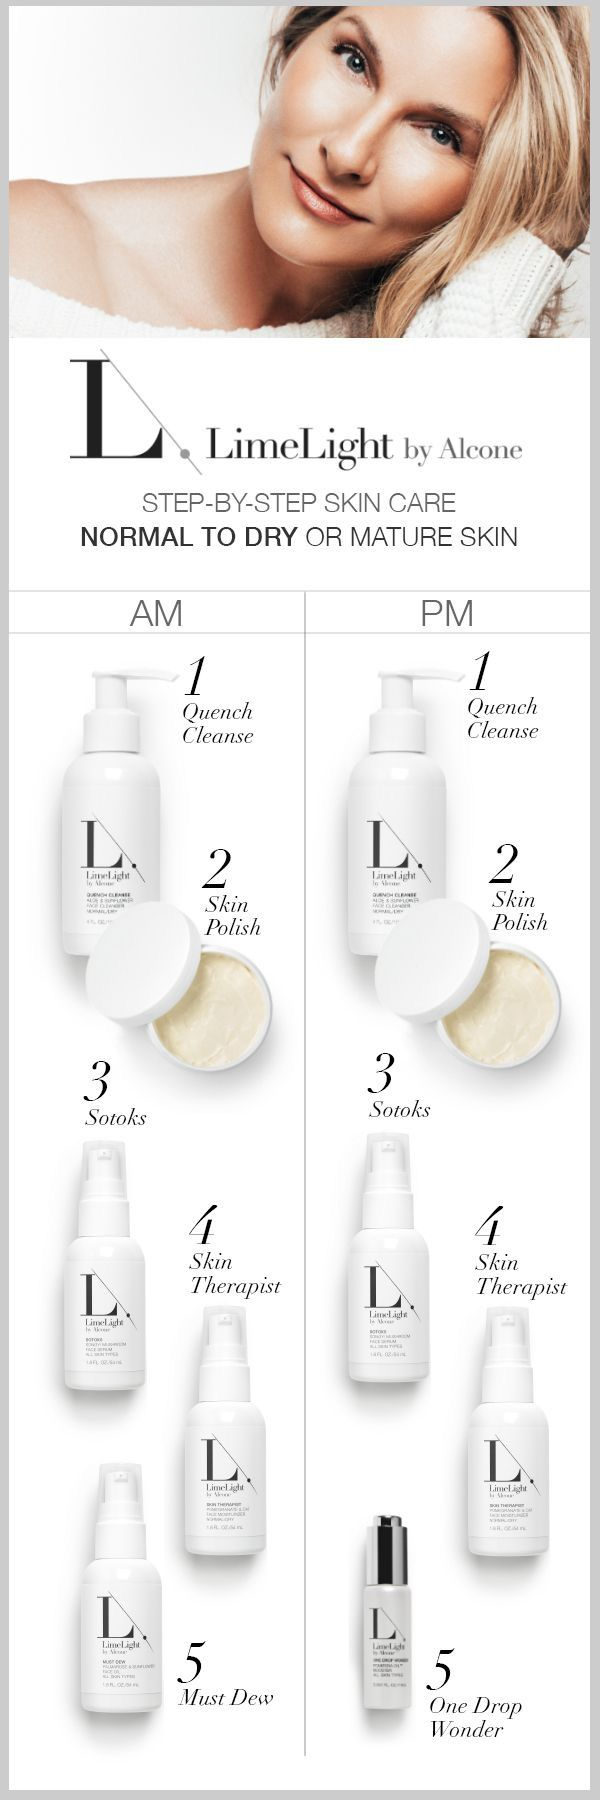 Vegan, all natural, cruelty free skin care for acne prone skin, Normal to dry skin or combination skin. Limelight by Alcone